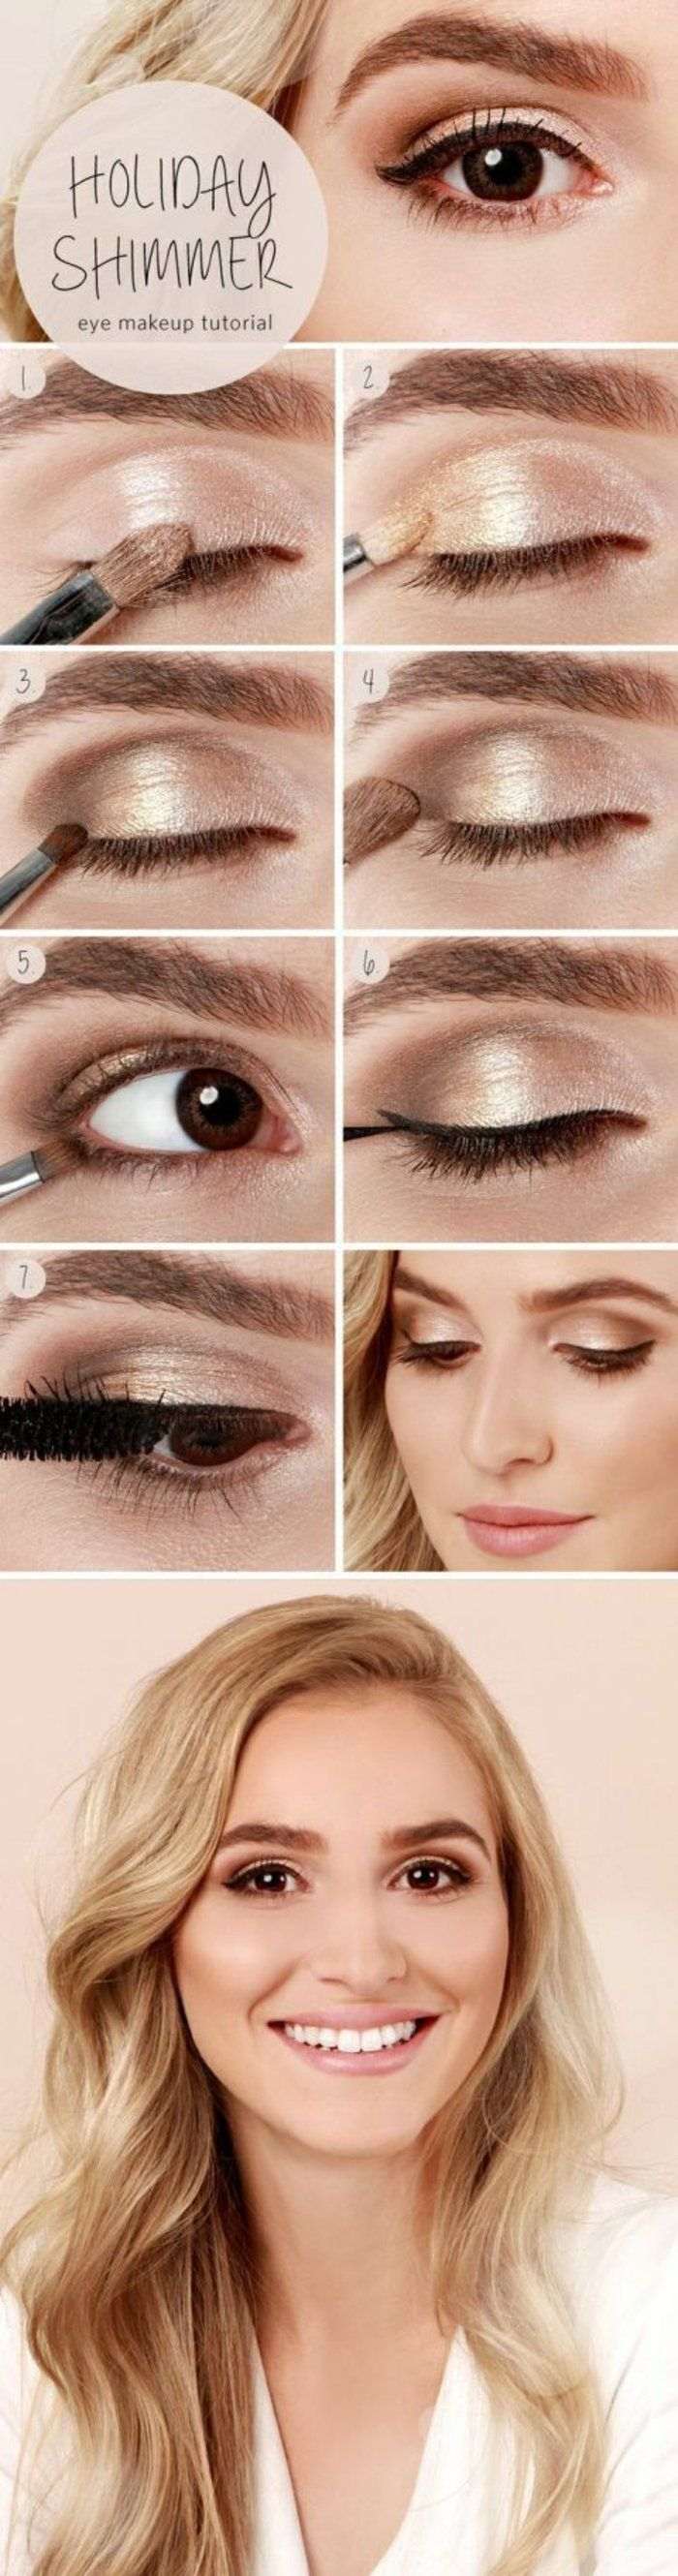 Makeup & Hair Ideas: maquillage leger pour yeux marrons comment se maquiller les yeux marrons